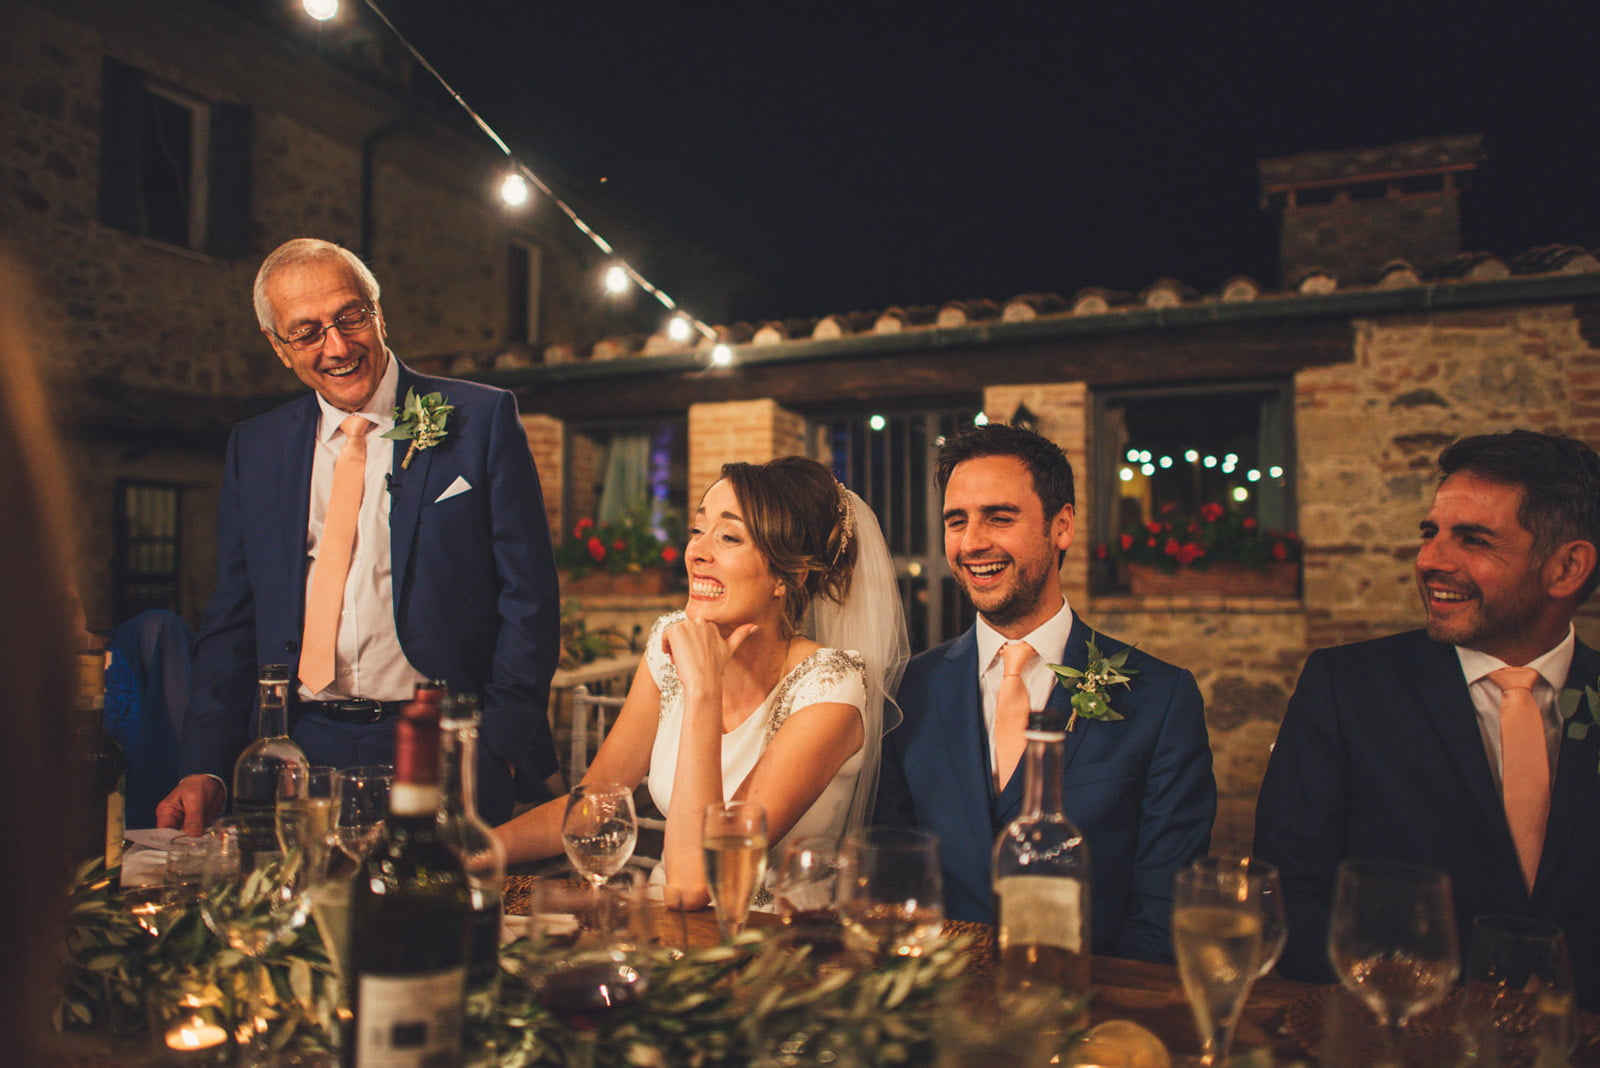 094-wedding-tuscany-san-galgano-federico-pannacci-photographer